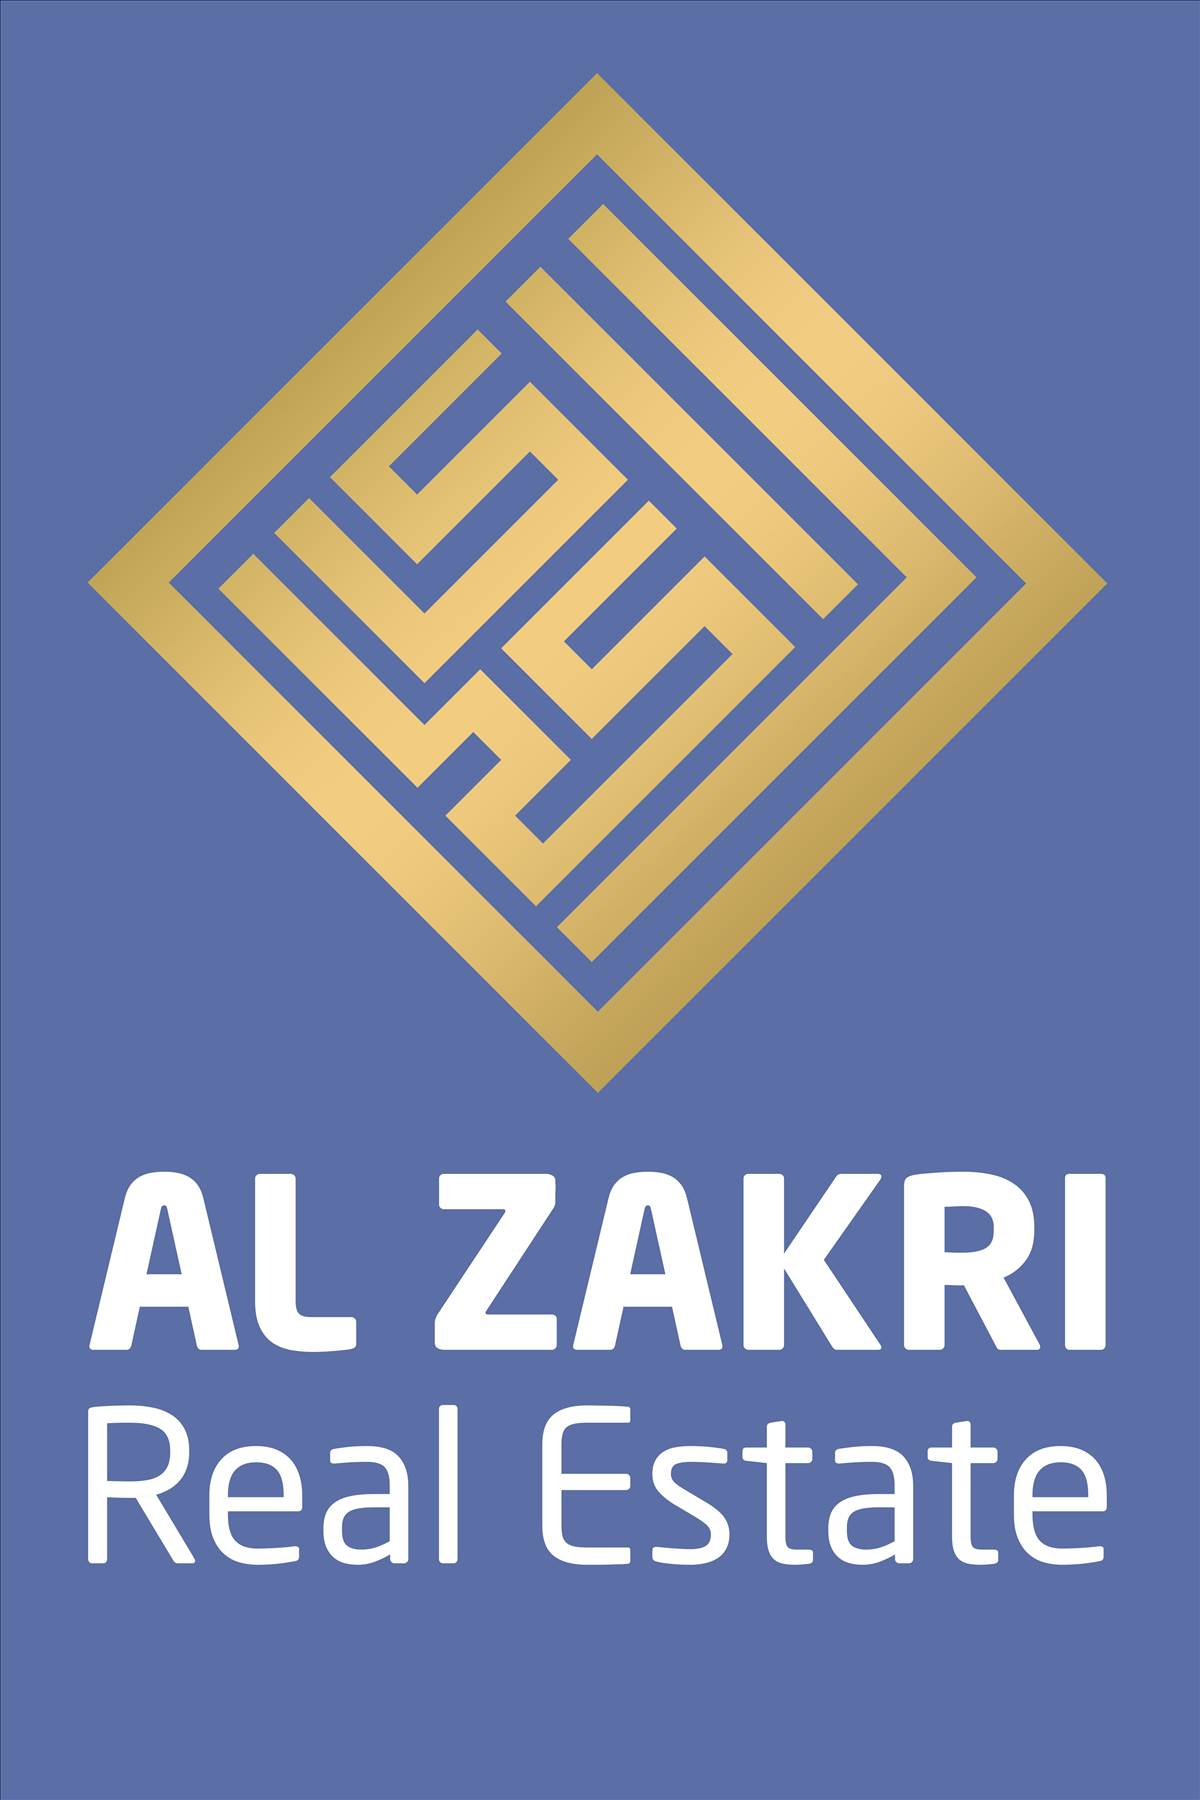 Alzakri 4 Real Estate -